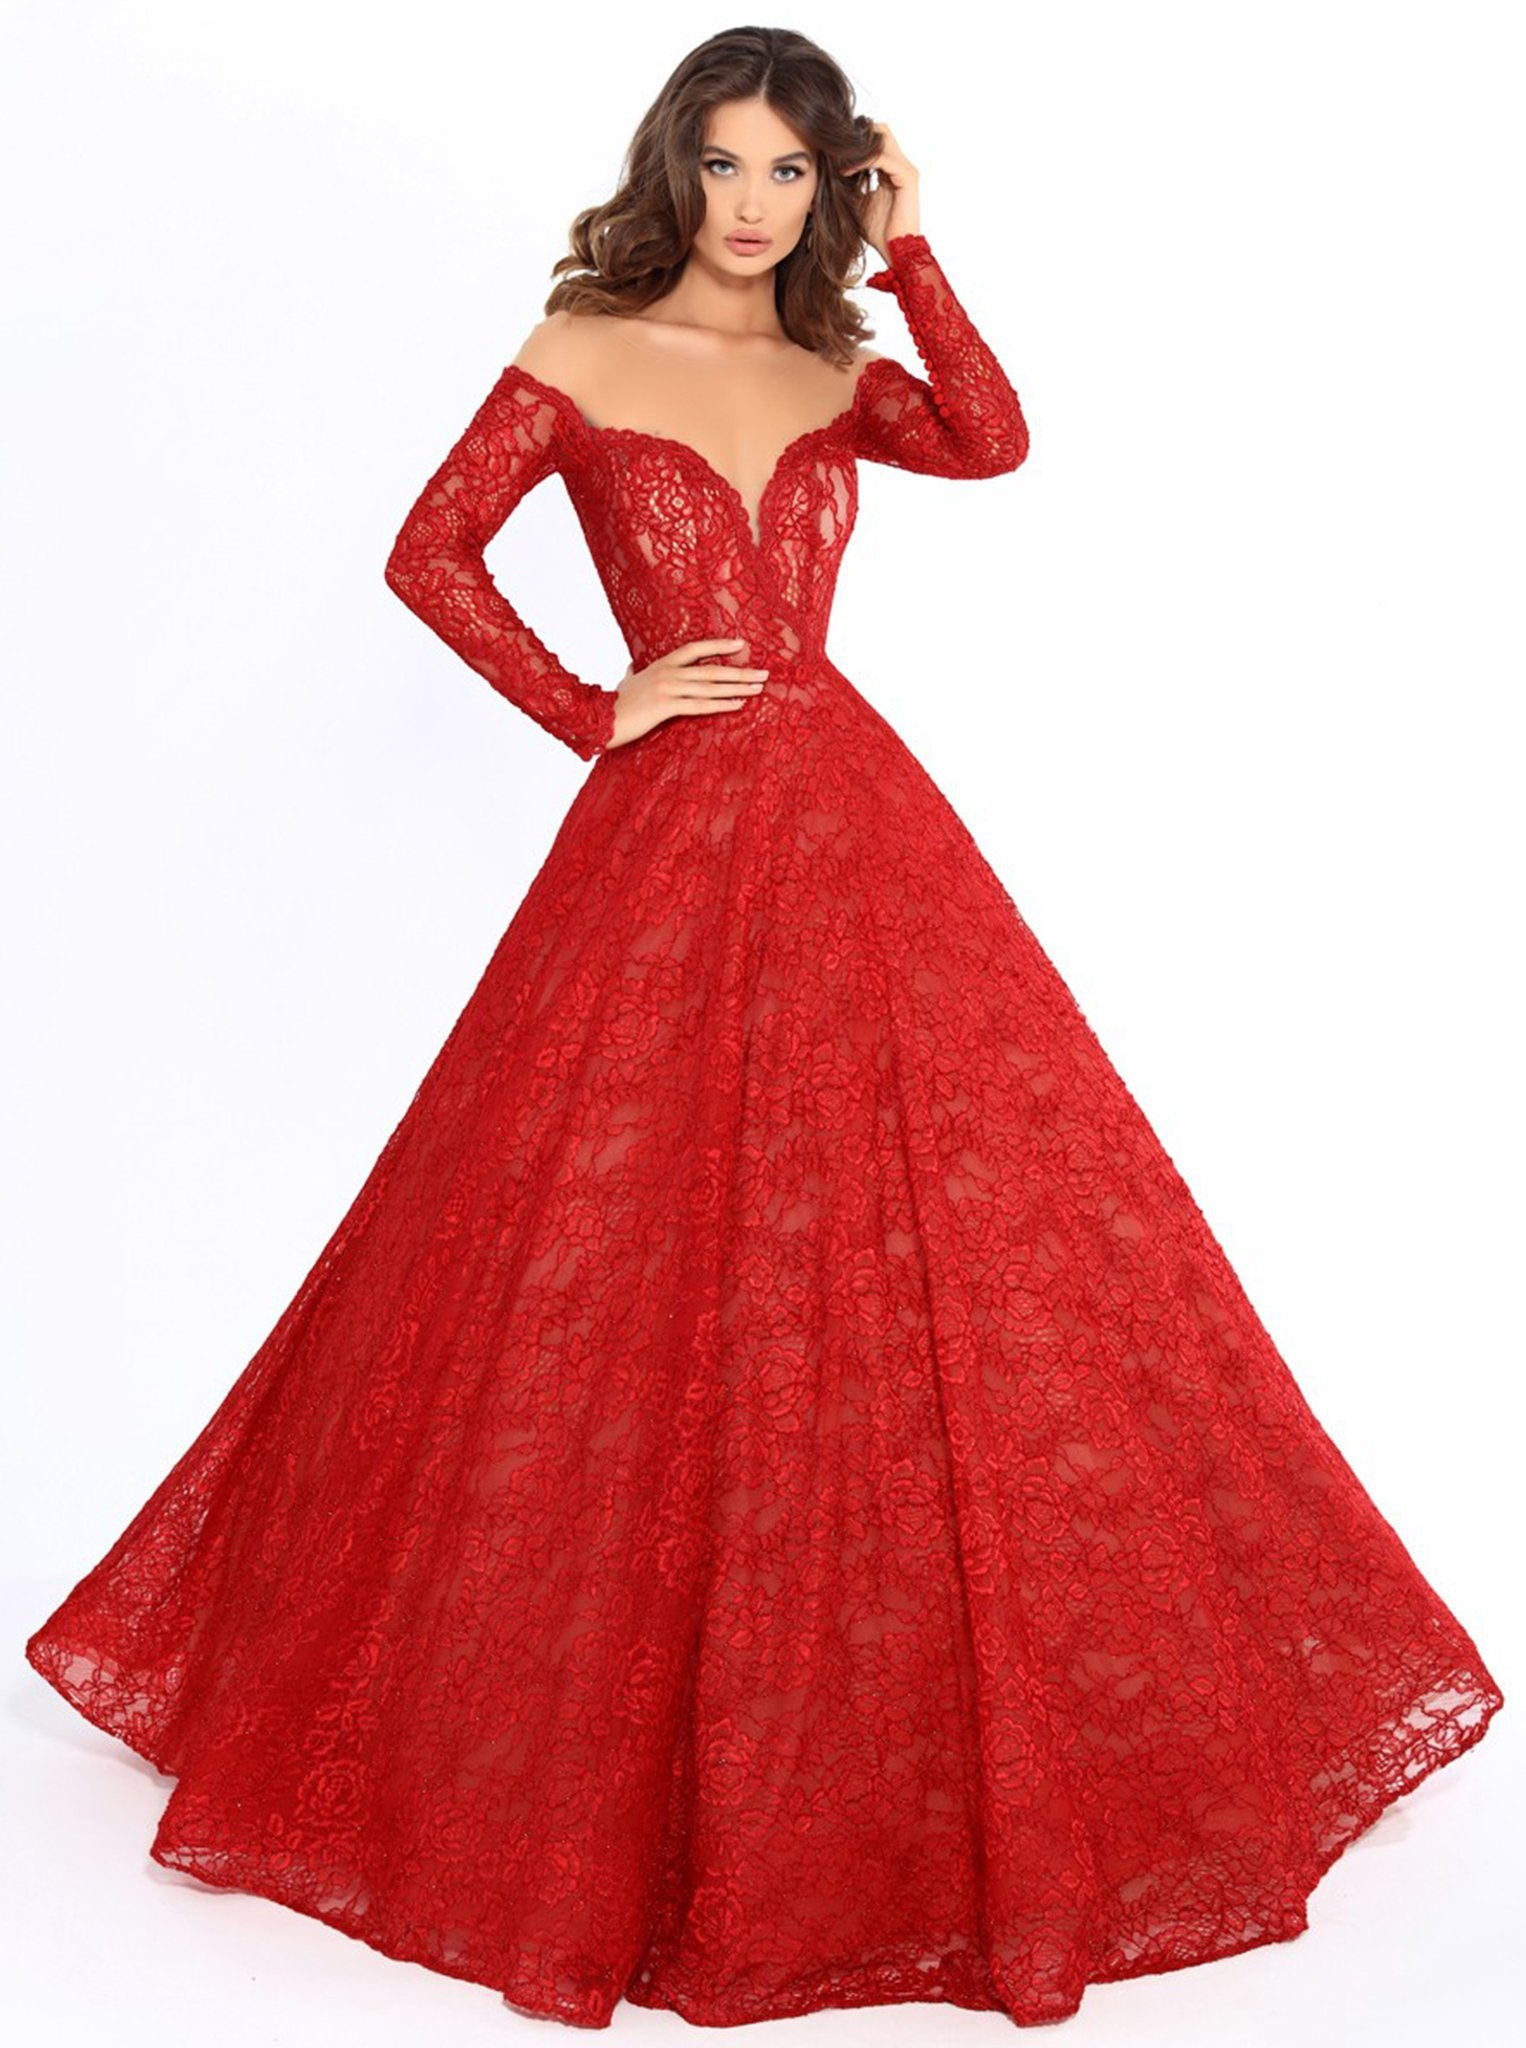 Tarik Ediz - 93729 Illusion Nude Shoulders Allover Lace Ballgown In Red